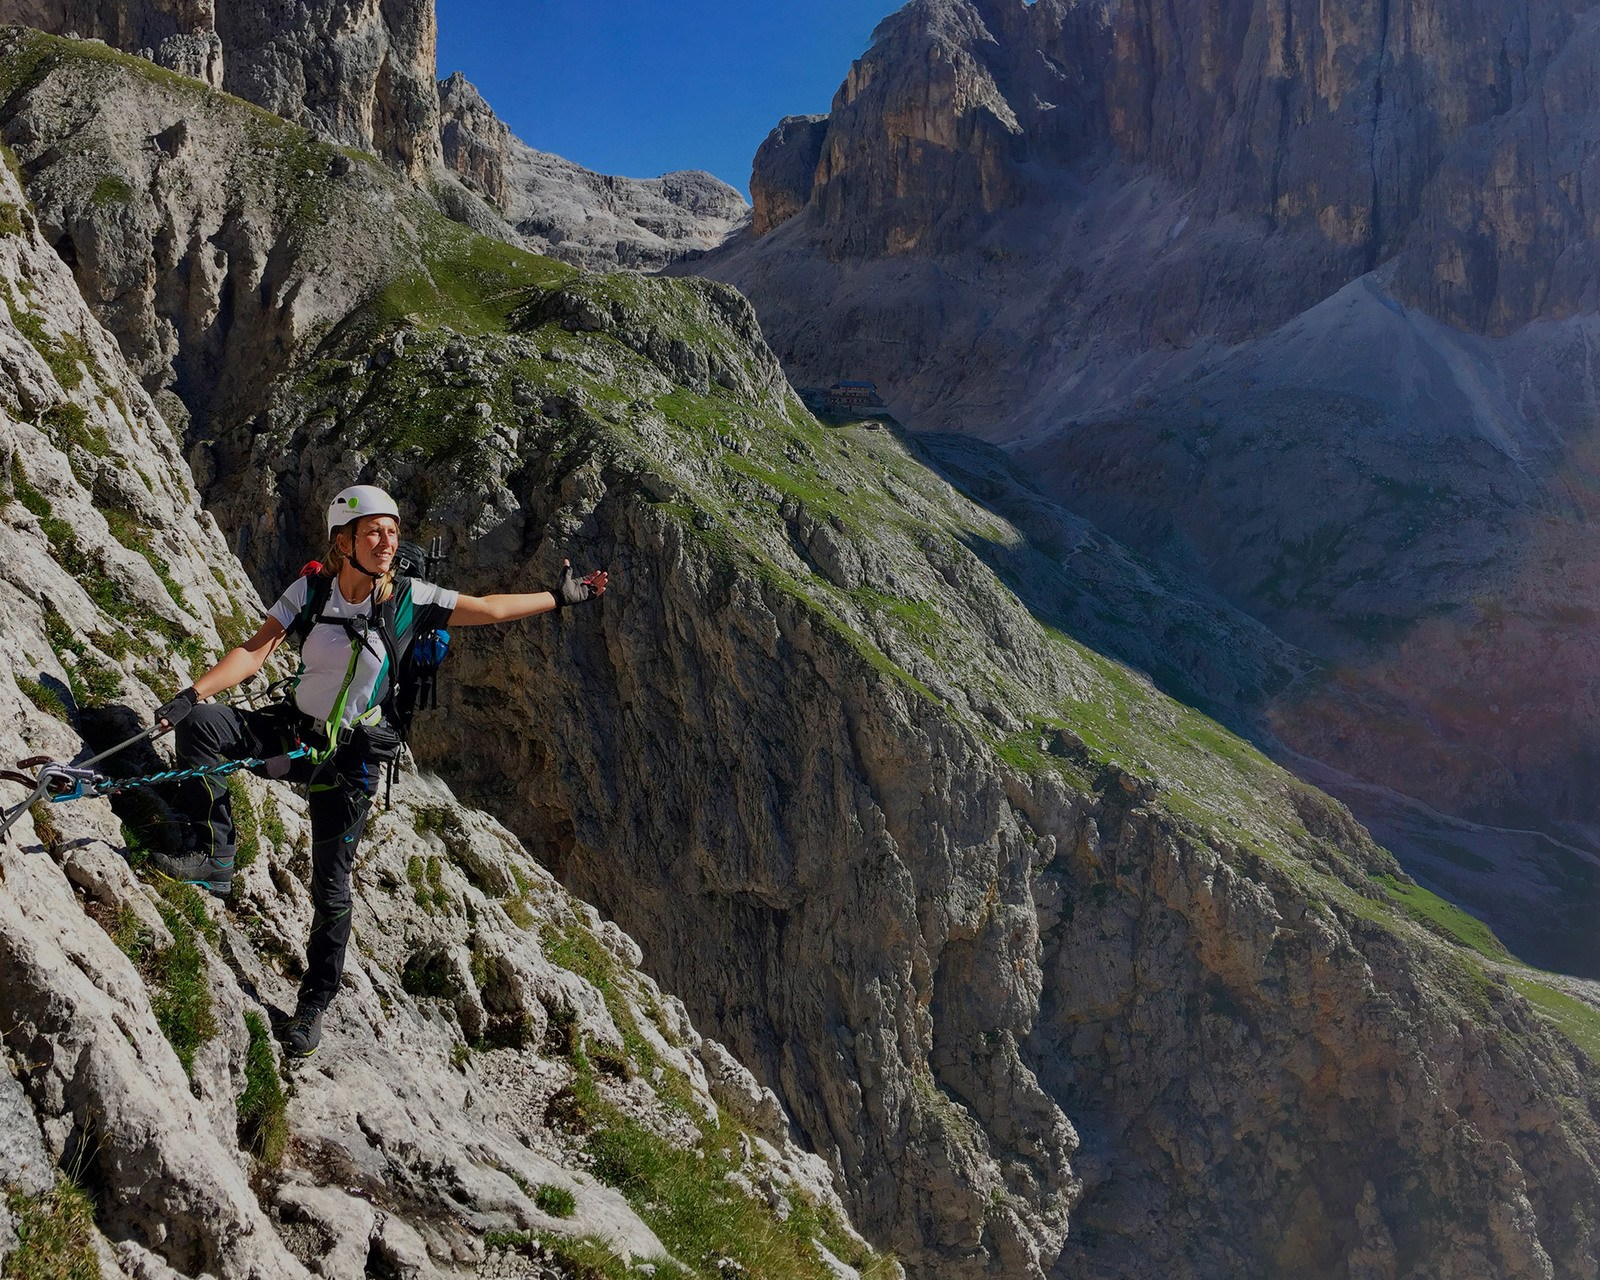 Outdoor-trentino-viaferrata